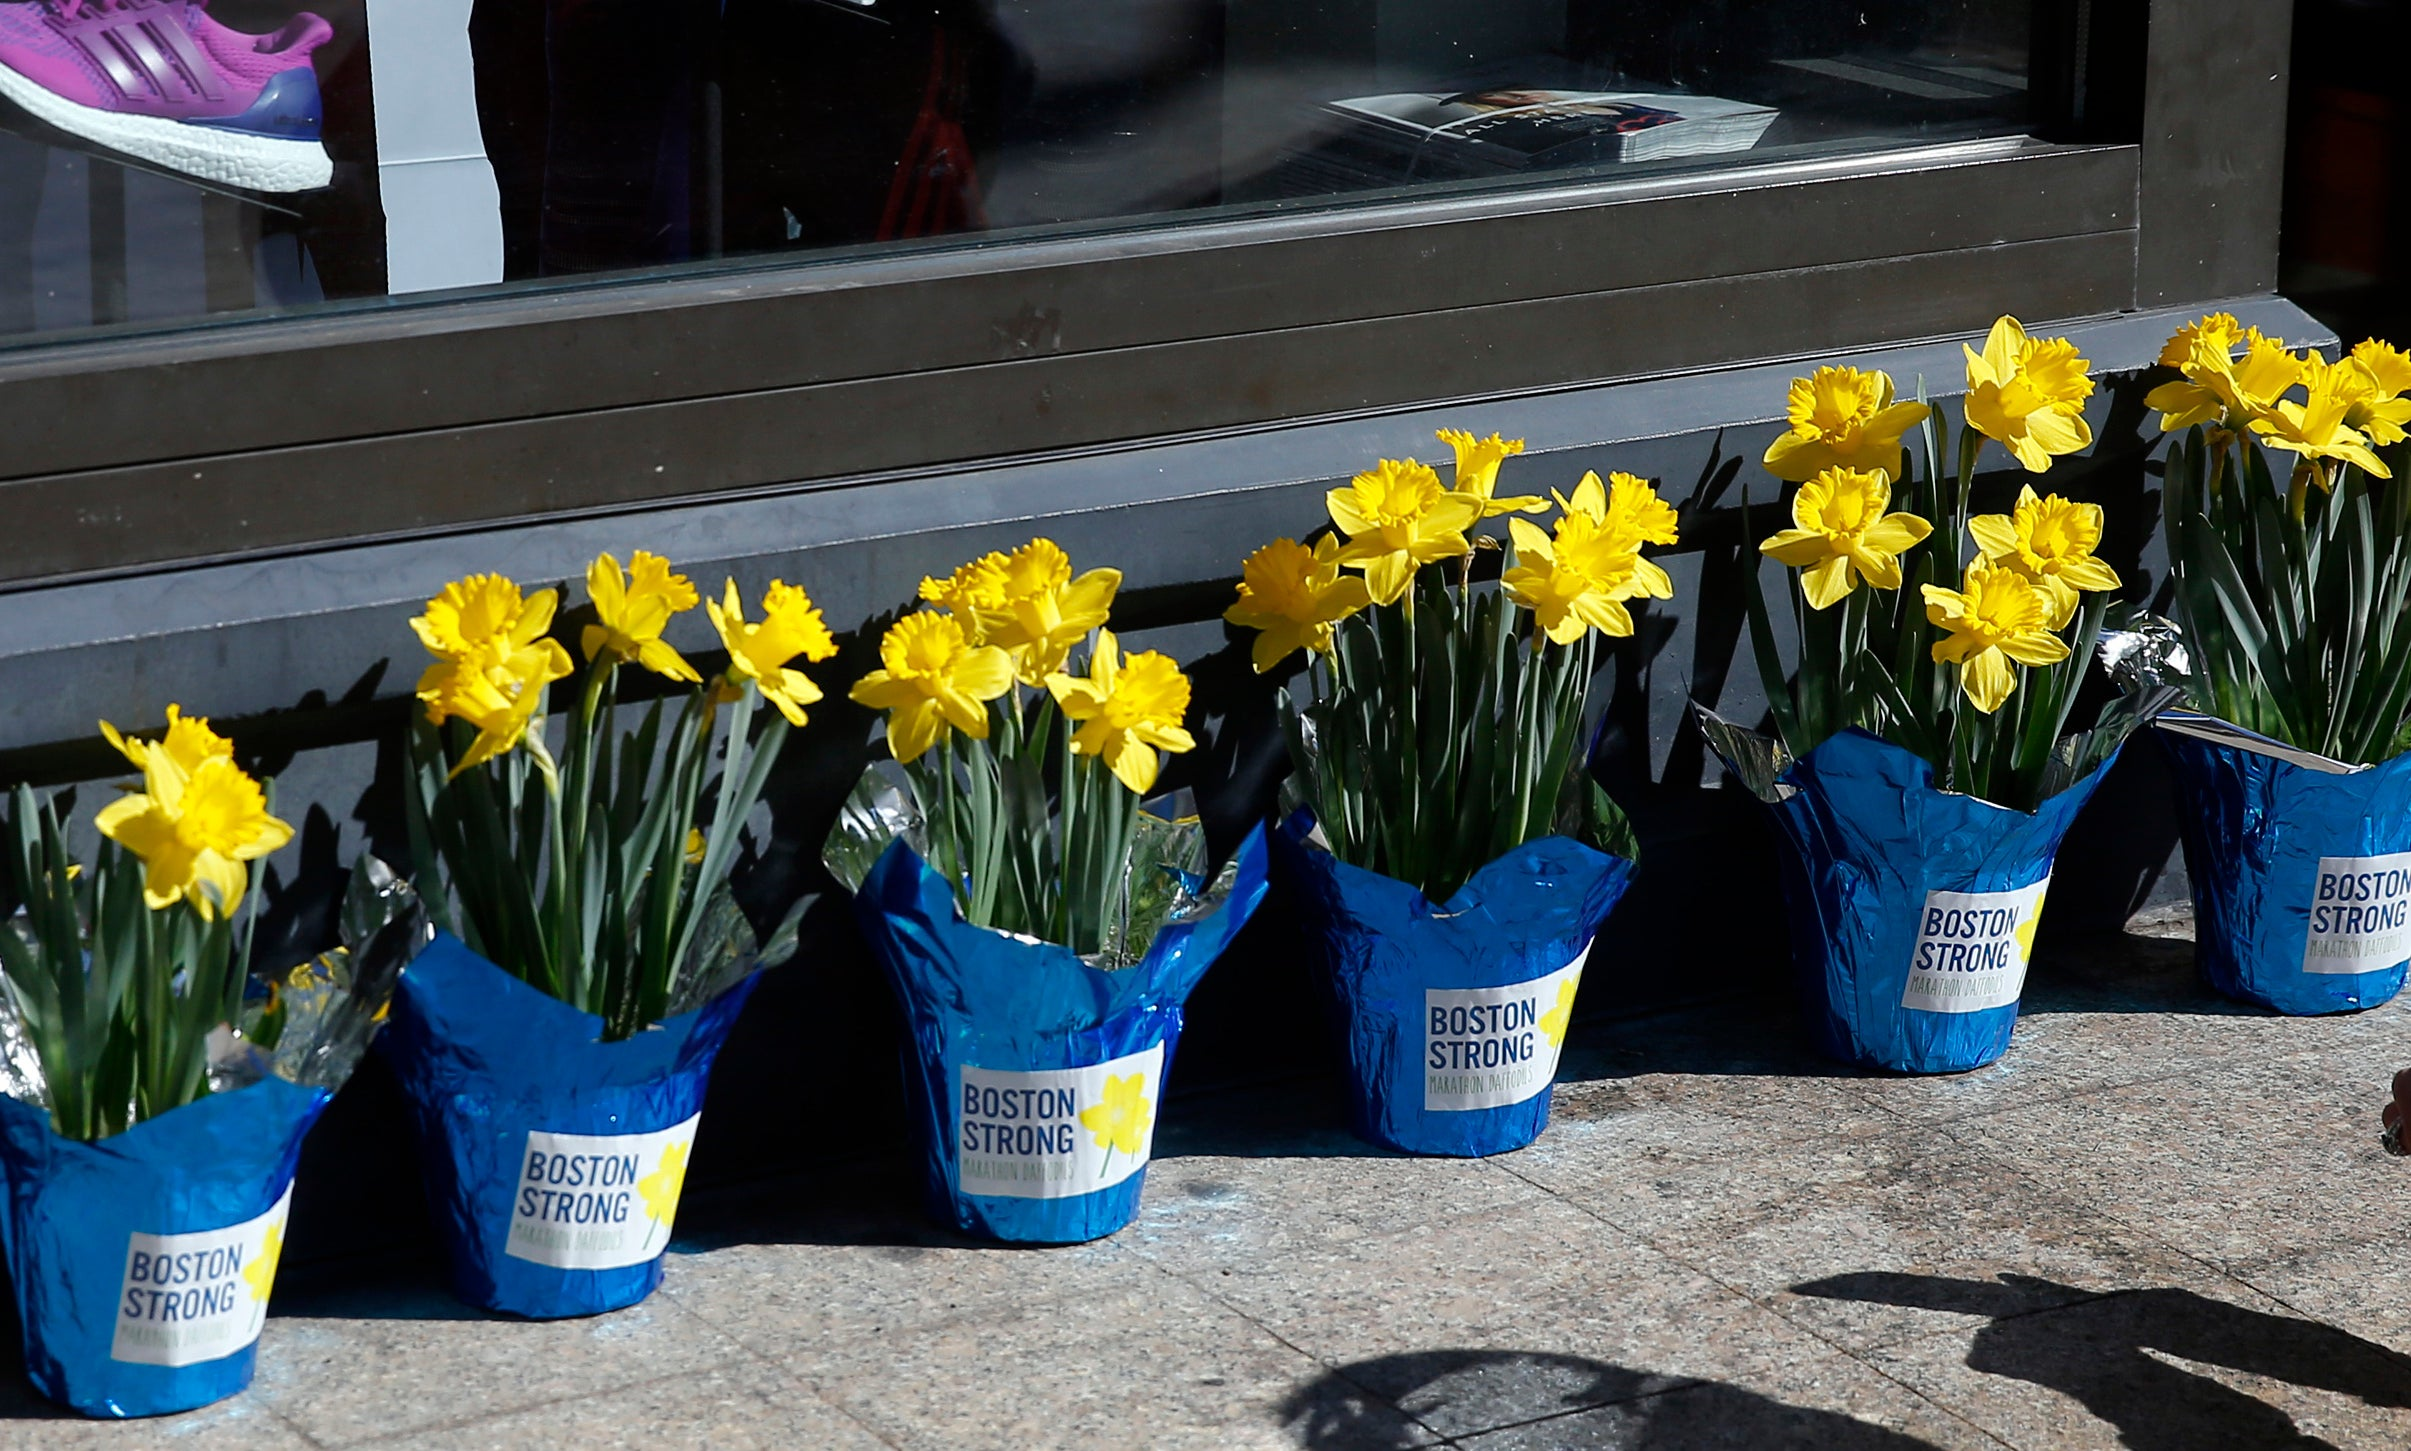 Boston, Massachusetts -- 4/19/2015-- A woman leans down to take a photo of potted daffodils with Boston Strong stickers on them lining the storefront window of Marathon Sports at the Marathon Finish Line in Boston, Massachusetts April 19, 2015. Jessica Rinaldi/Globe Staff Topic: Reporter: